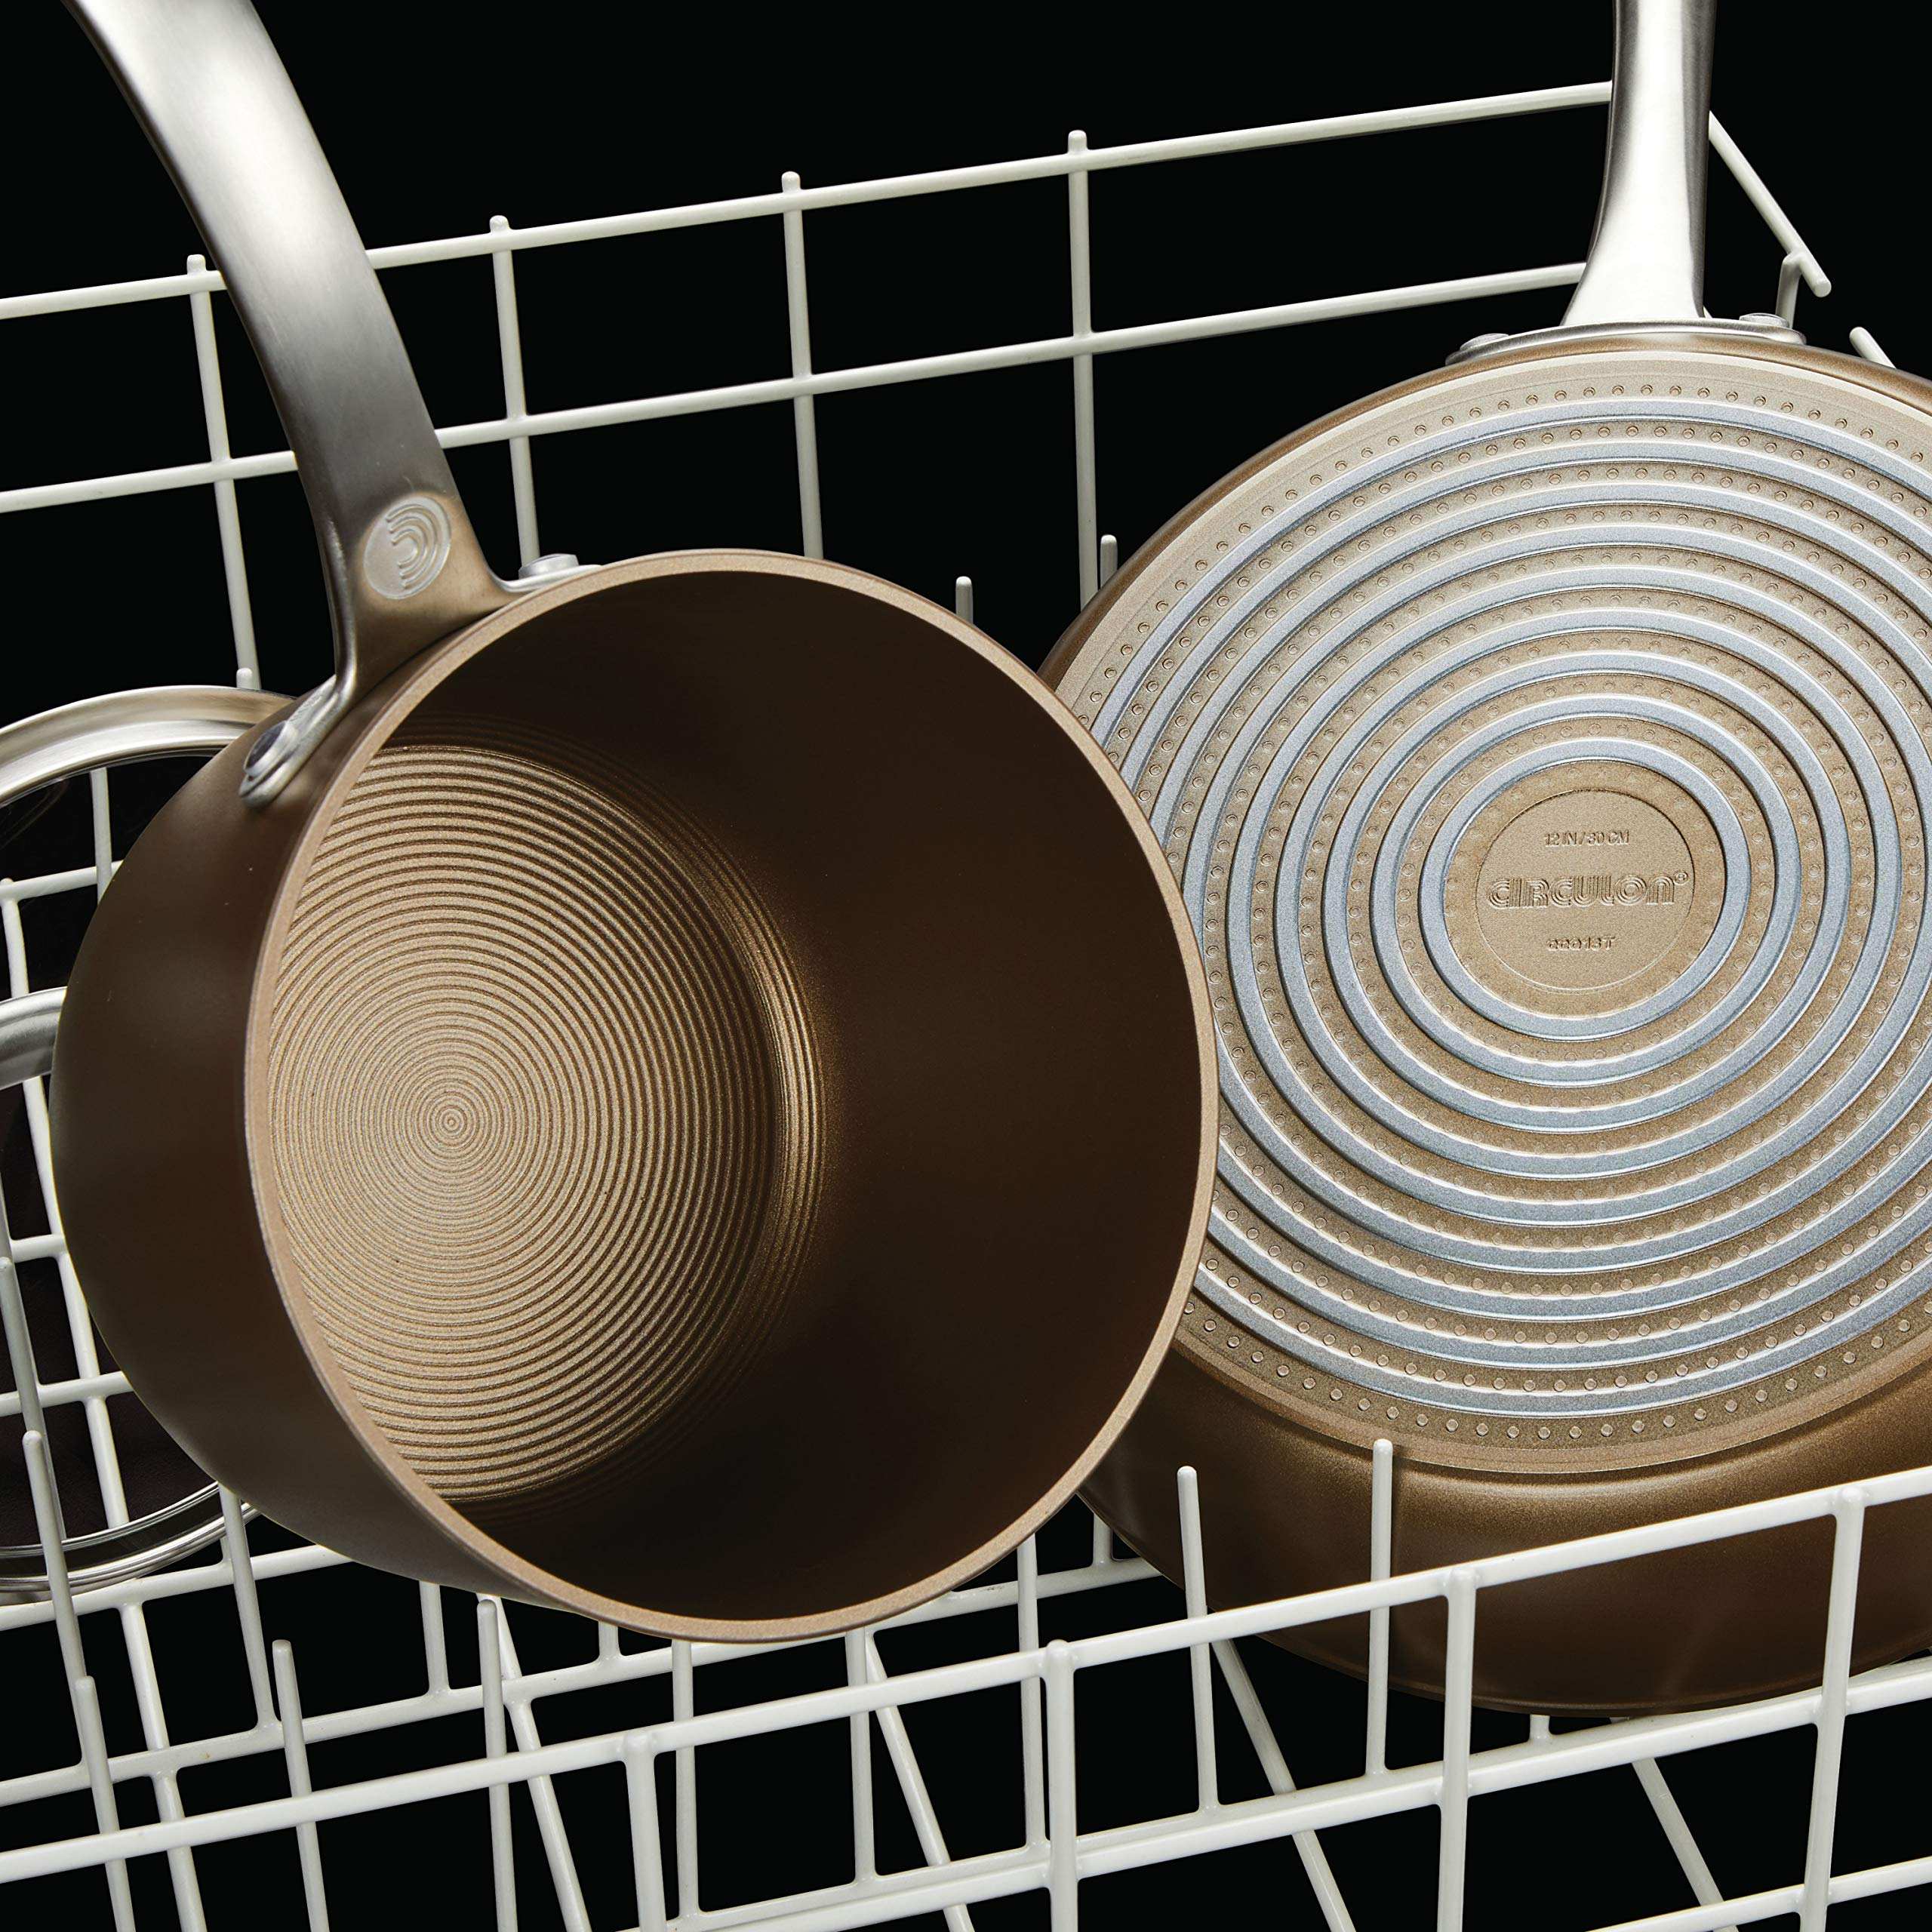 Circulon Ultimum Forged Aluminum Nonstick French Skillet Twin Pack, Nutmeg by Circulon (Image #4)